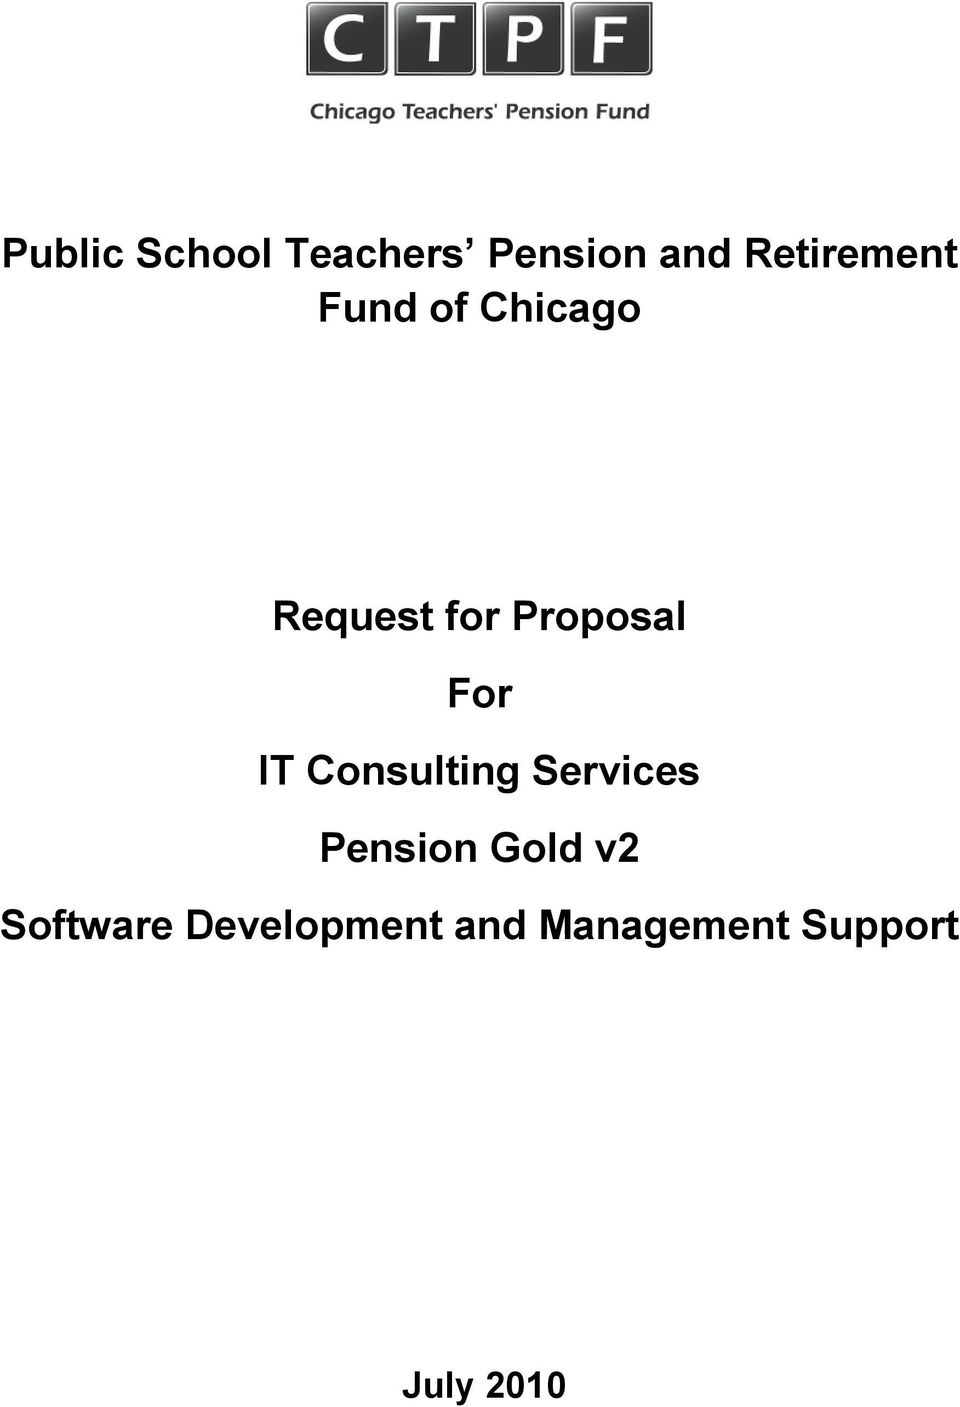 Proposal For IT Consulting Services Pension